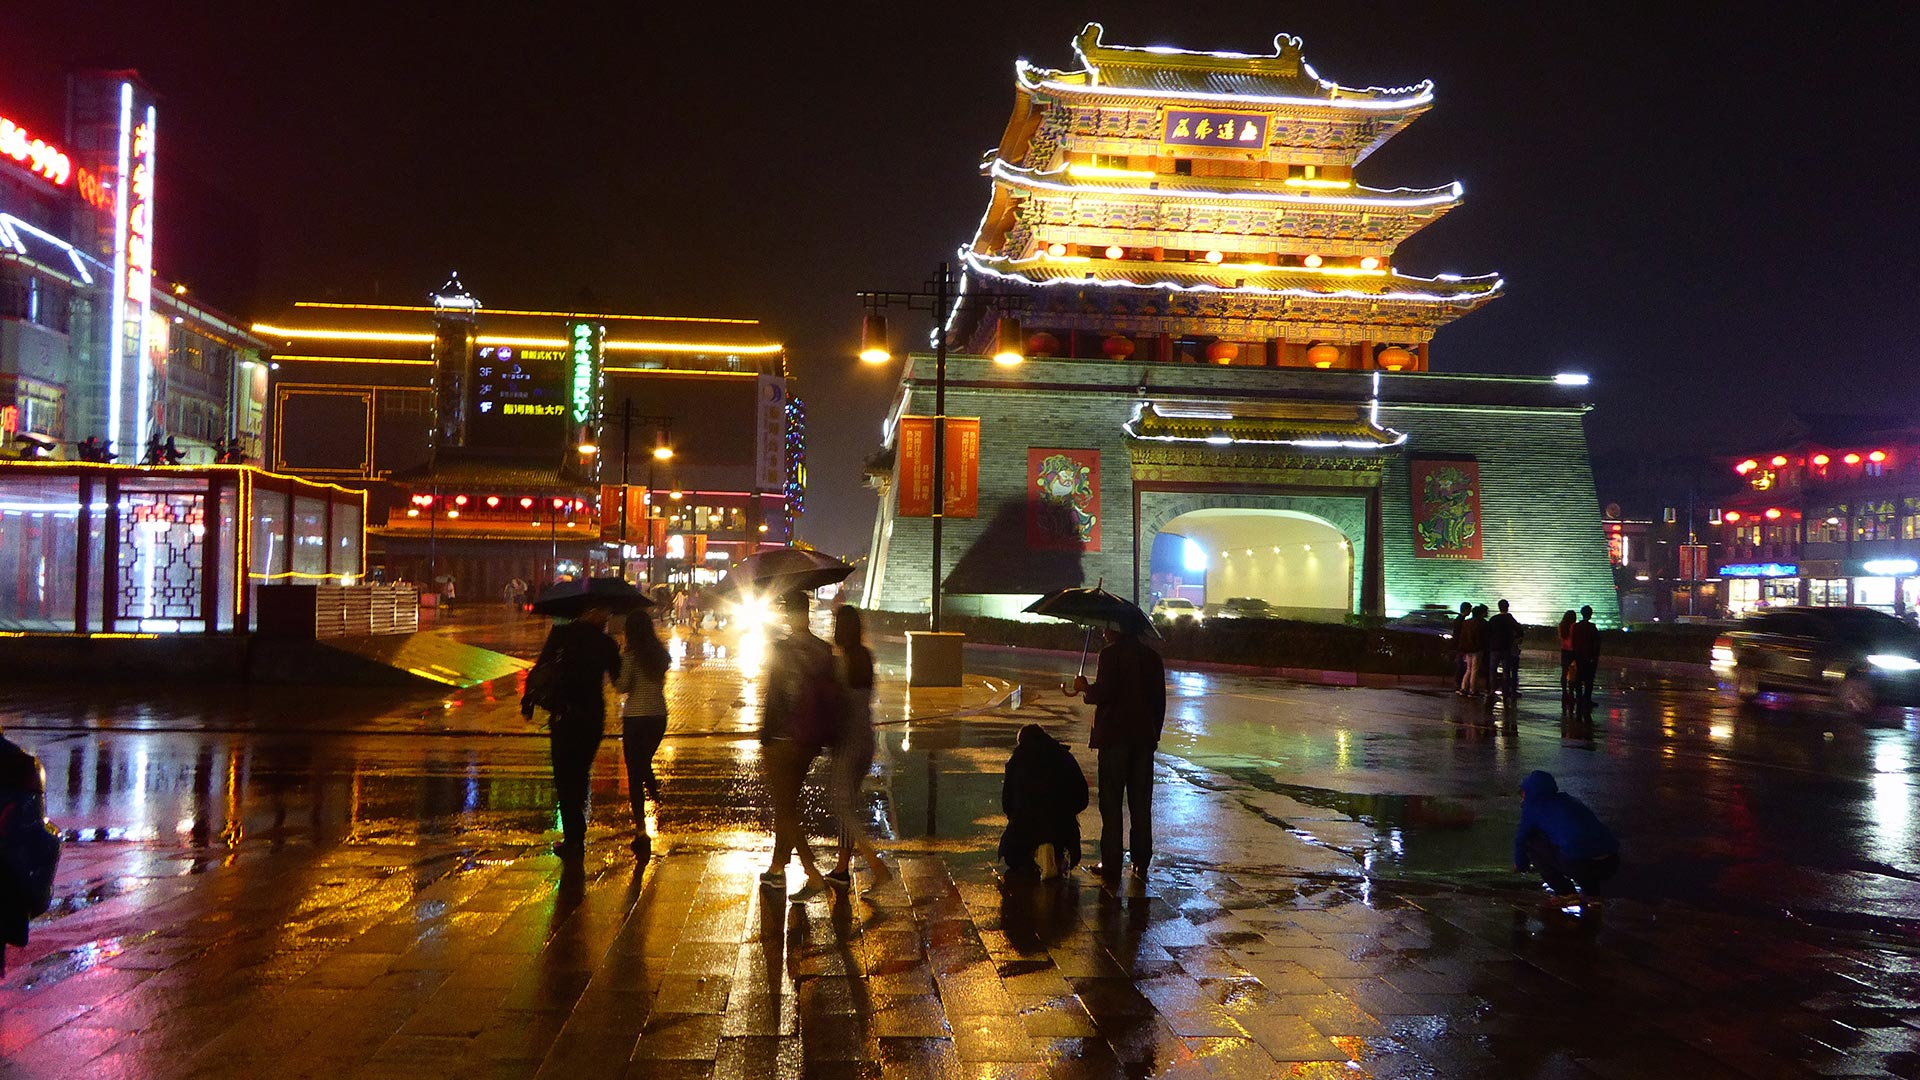 Night time near the Drum Tower in Kaifeng